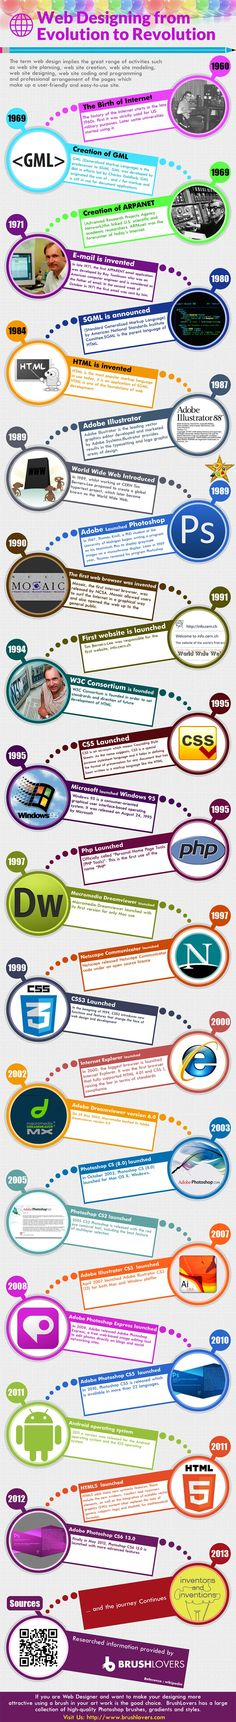 Journey of Web designing – Starting from Birth...    http://blogs.perceptionsystem.com/infographic/journey-web-designing-starting-birth    #webdesign #webdesigninfographic #infographic